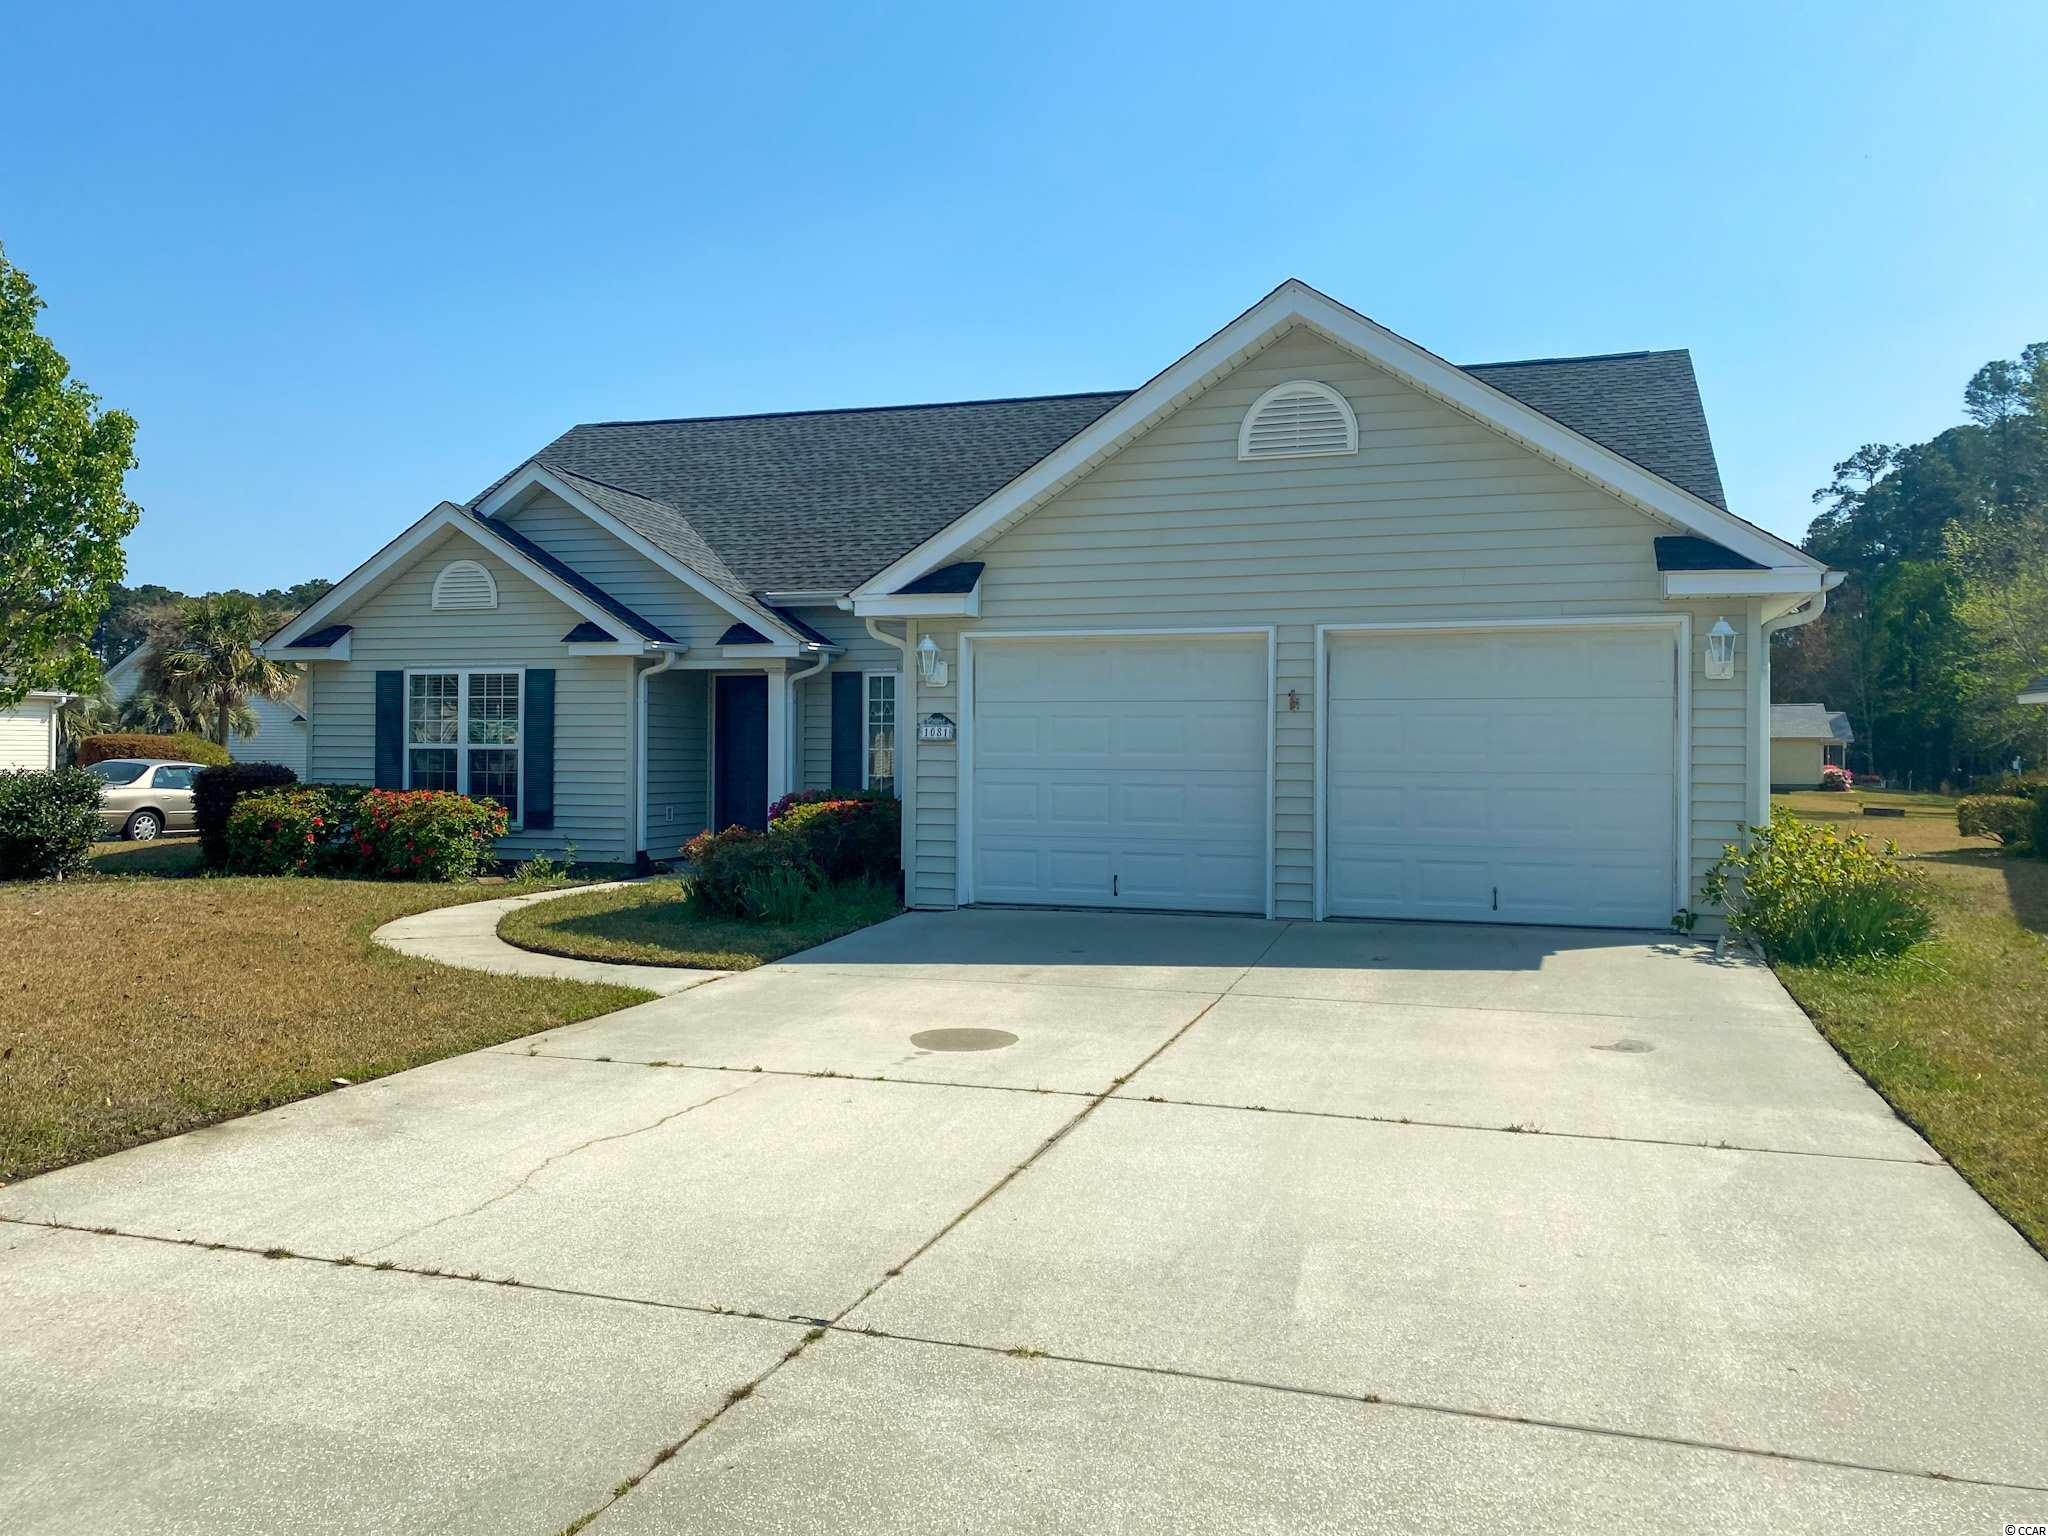 Beautiful and spacious Murrells Inlet home positioned on a large corner lot! Enjoy a wonderful community that's just minutes away from the Marsh-walk, beaches, hospitals, schools and shopping! ALL appliances will convey. HOA dues paid until January 2022! HOA includes a community pool, trash pickup, maintenance of common areas and basic internet/cable through Spectrum. Home has a brand new roof (replaced summer of 2020), HVAC replaced in 2015, newly tiled kitchen and breakfast area, shelving installed in the temperature controlled attic and a two car garage equipped with pegboard/shelving and a workbench. Metal hurricane shutters are fitted for all windows. Motivated Seller! Bring all offers!